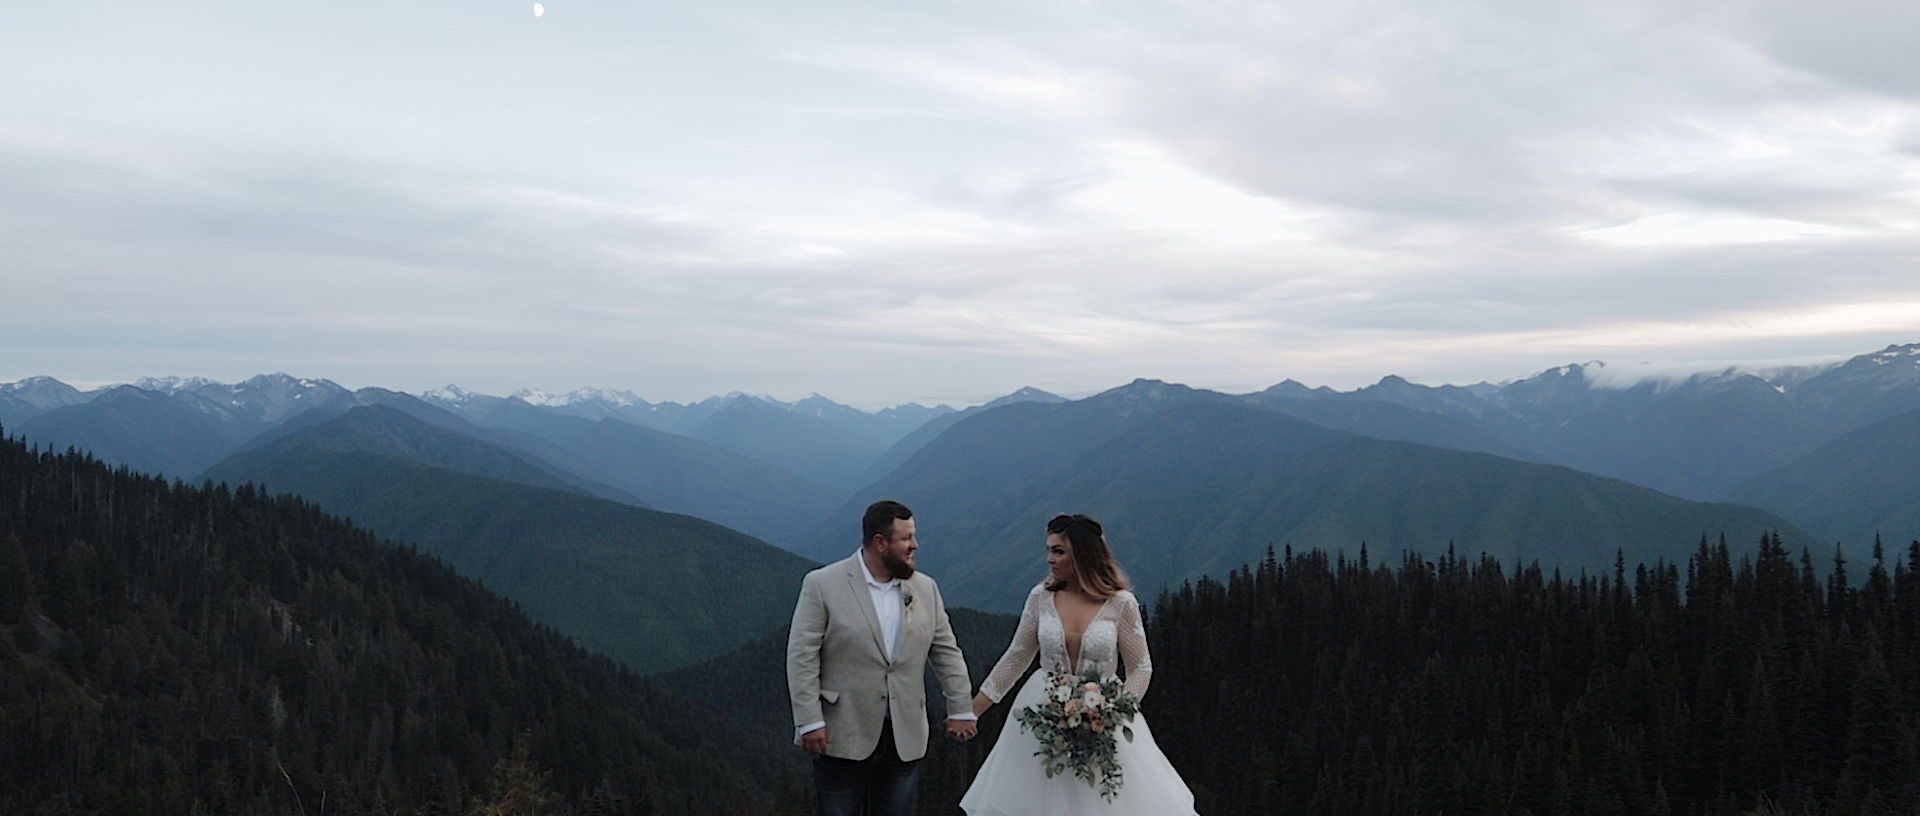 Emily + Zach | Port Angeles, Washington | Hurricane Ridge